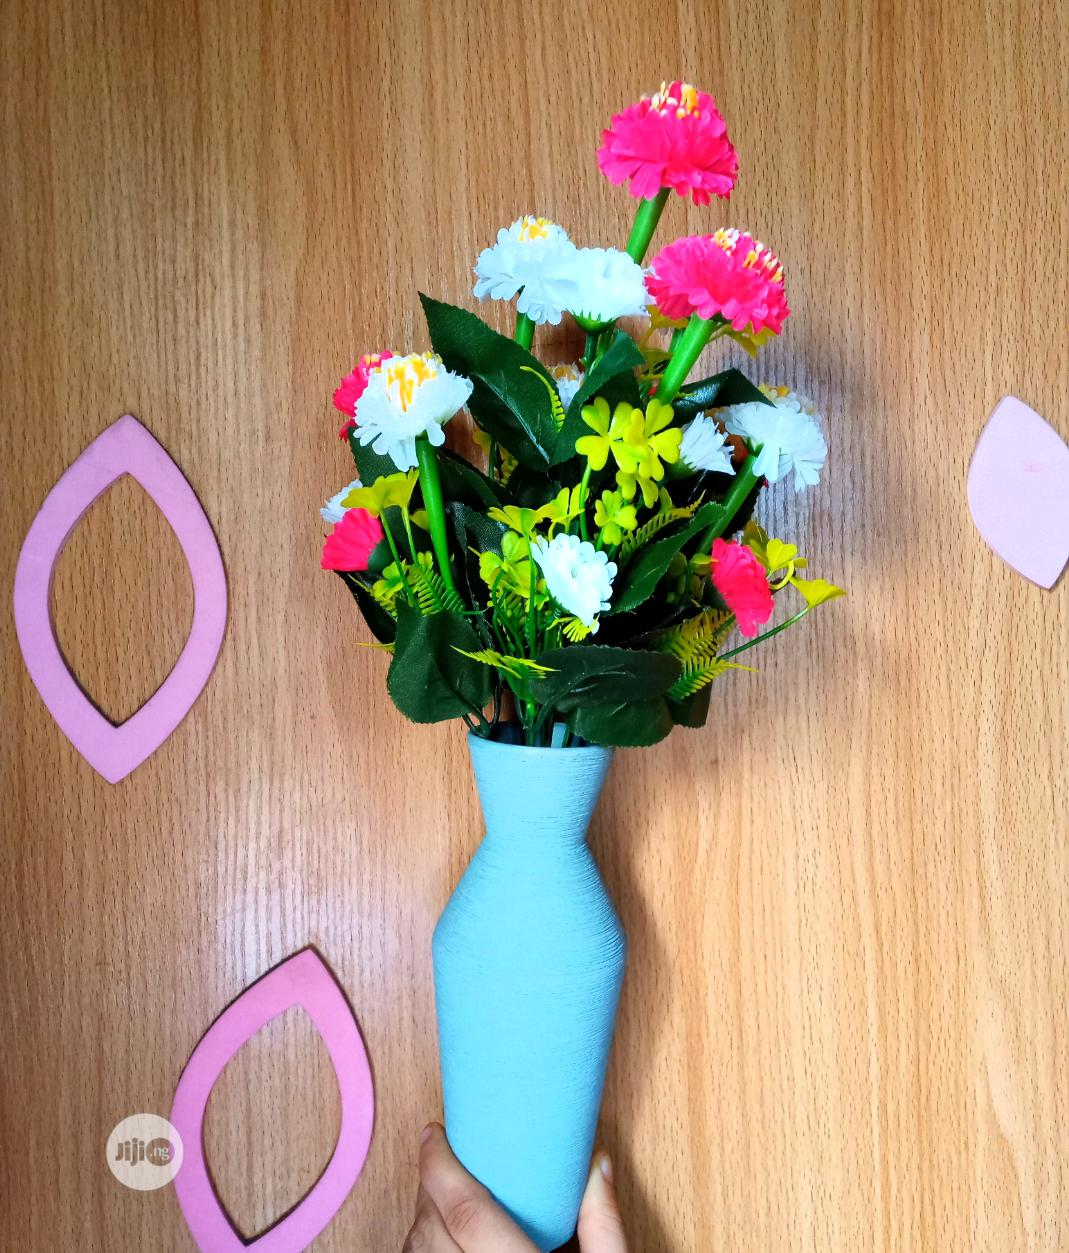 Table Top Flower Vase With Flowers